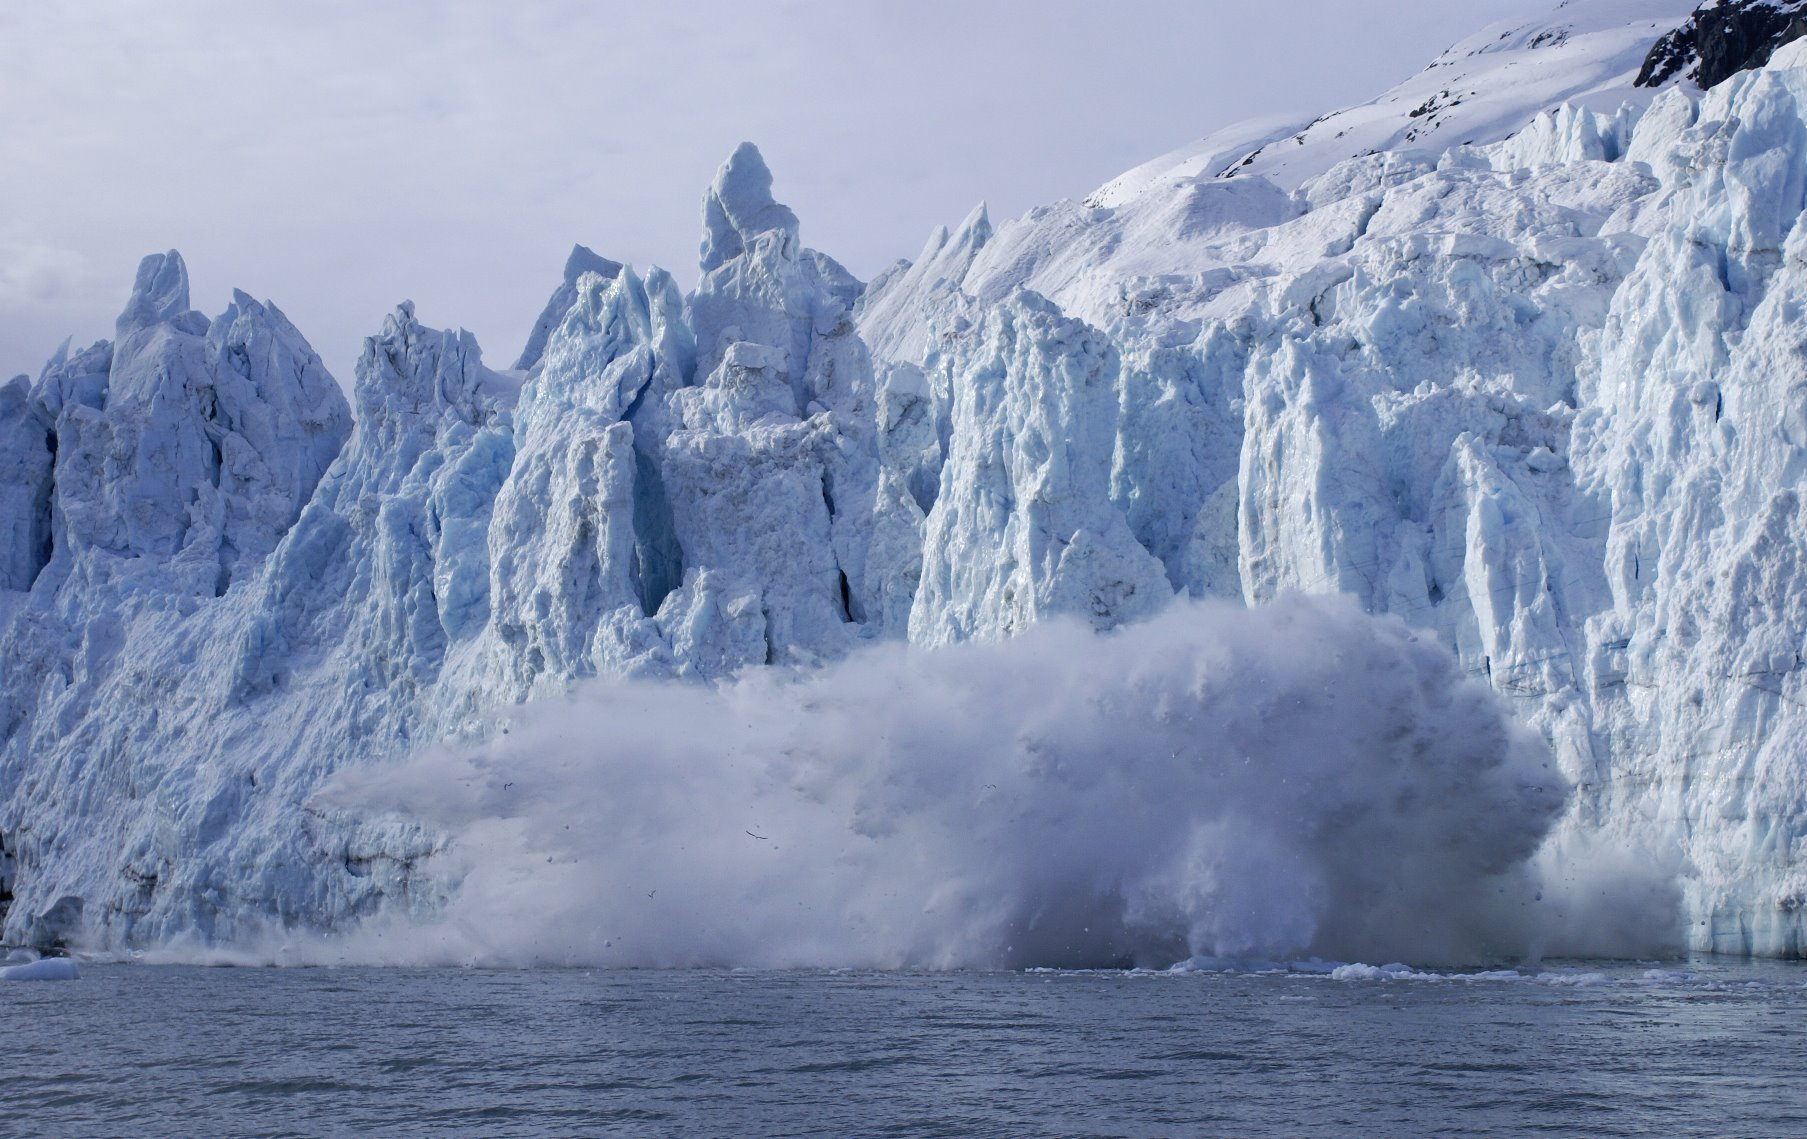 Big ice calving off the face of Margerie Glacier - over 200 feet high, causing a 100 feet splash.